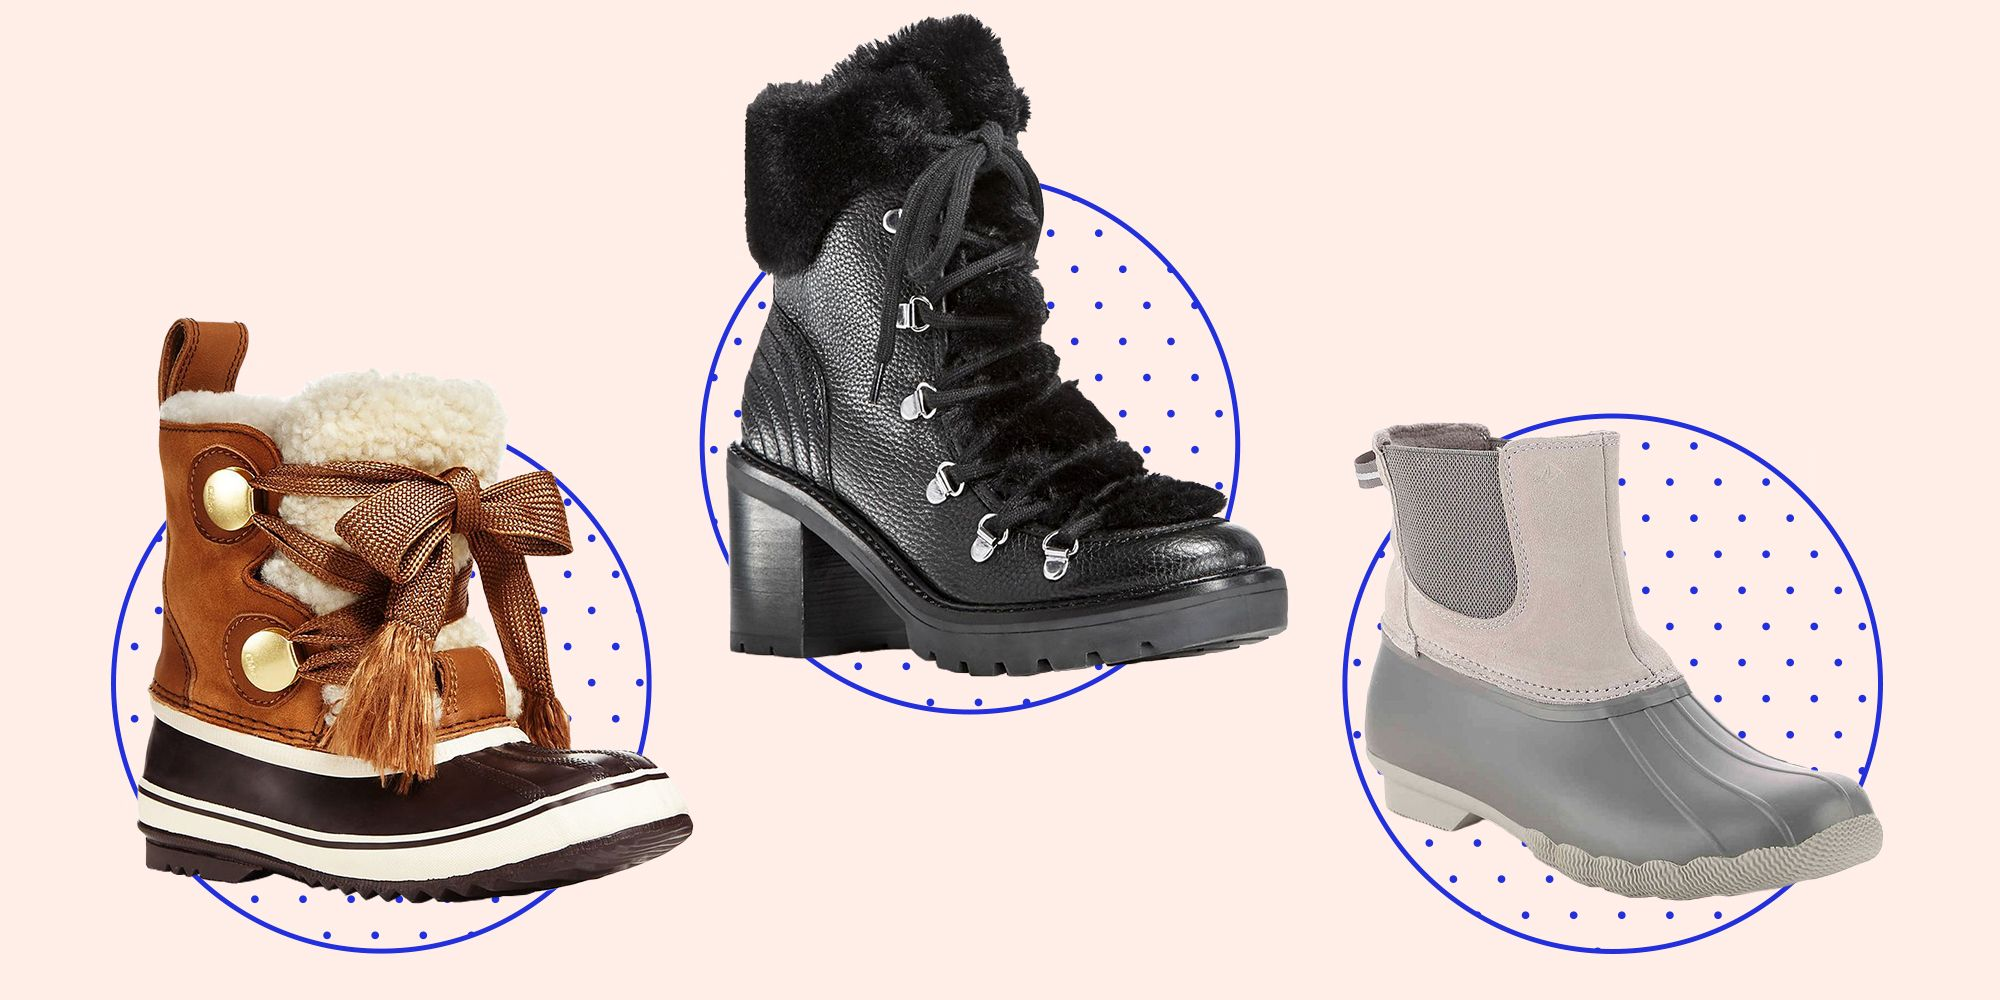 10 Snow Boots You'll Actually Want to Wear This Winter